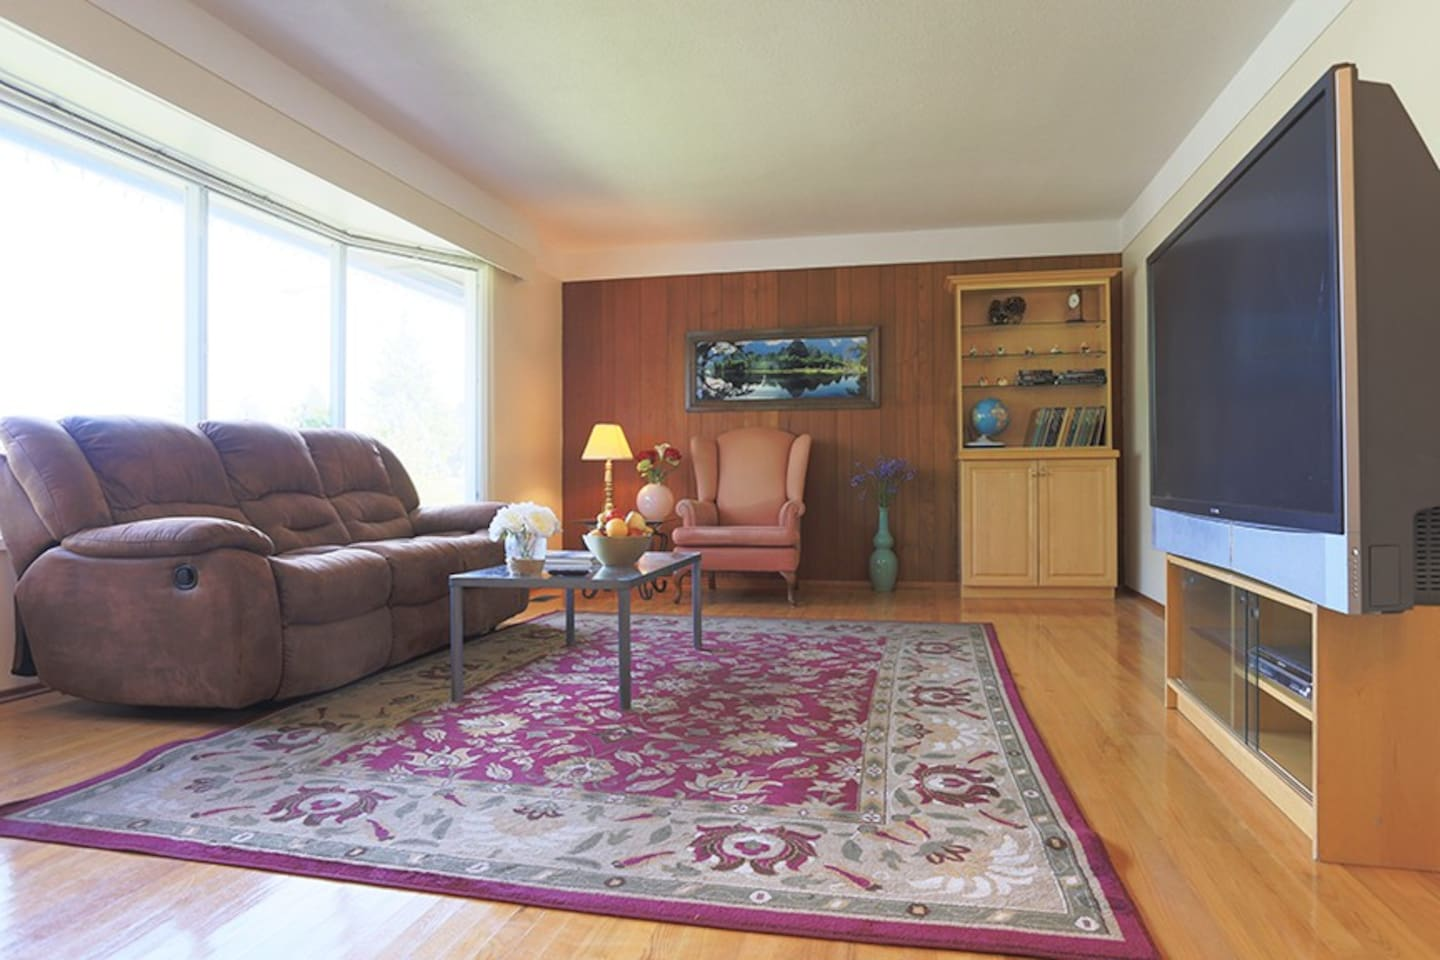 Spacious living room with large windows and 62 inch TV